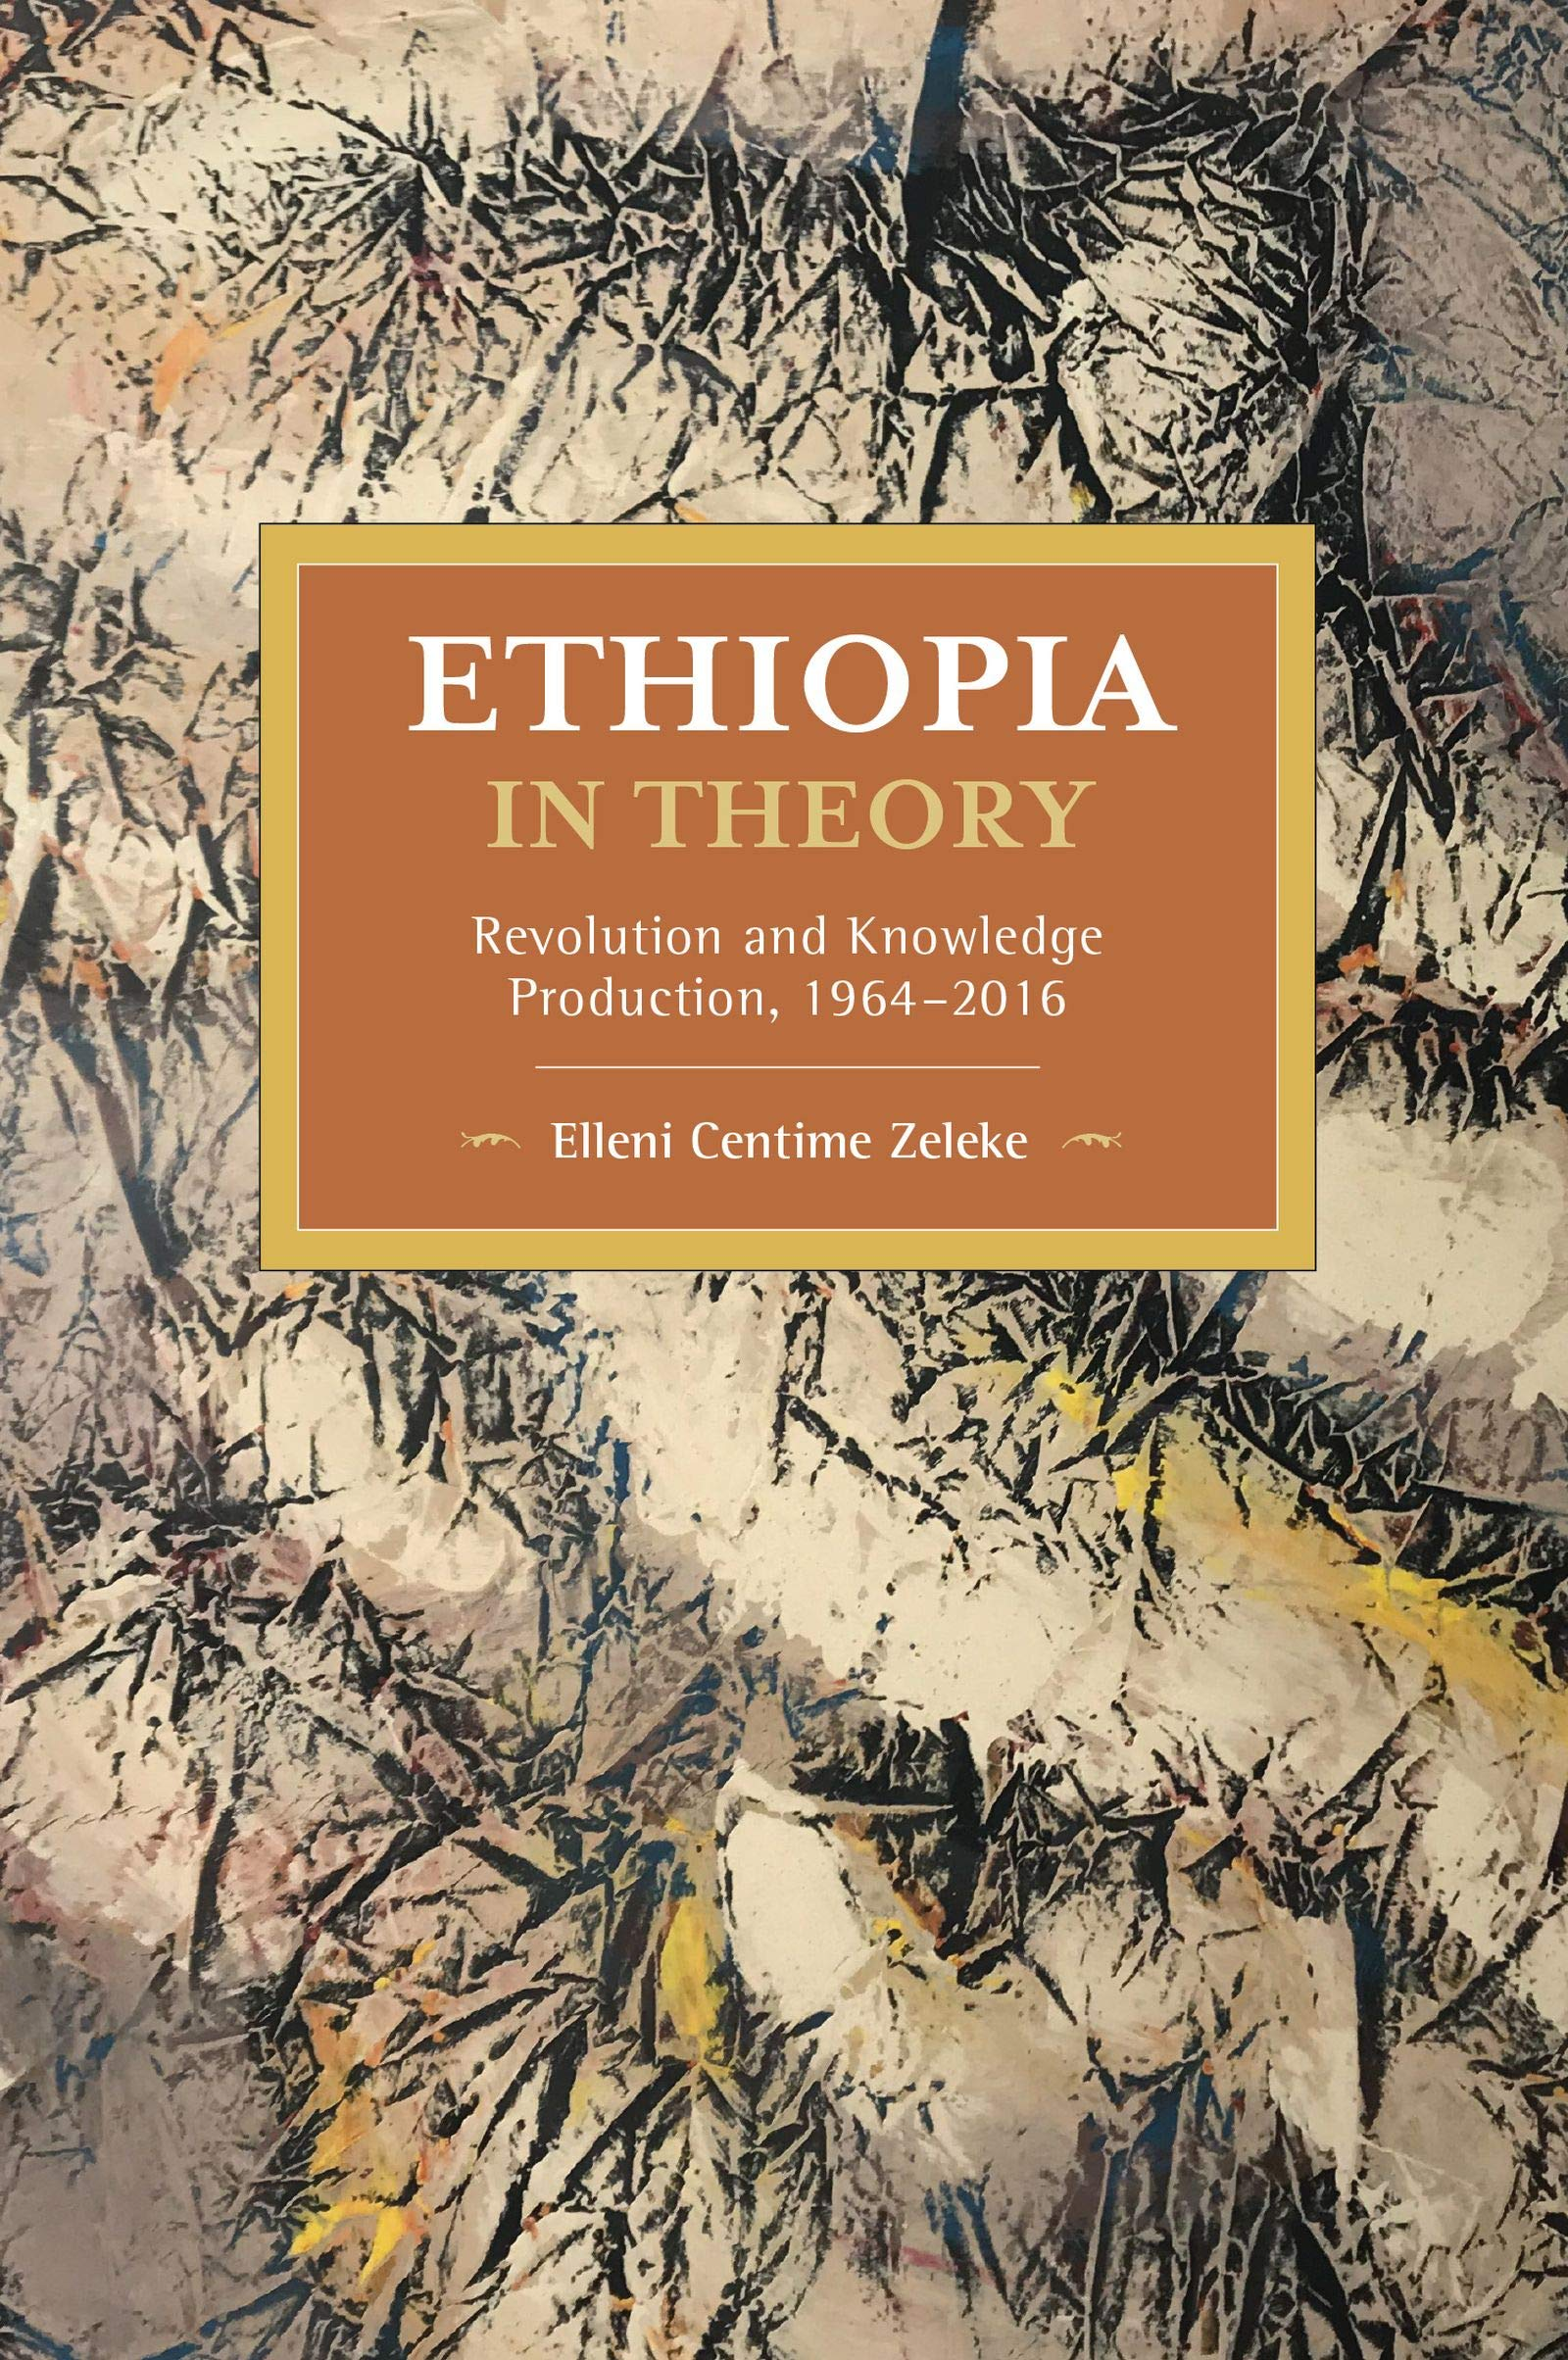 Ethiopia in Theory: Revolution and Knowledge Production, 1964-2016  (Historical Materialism): Zeleke, Elleni Centime: 9781642593419:  Amazon.com: Books